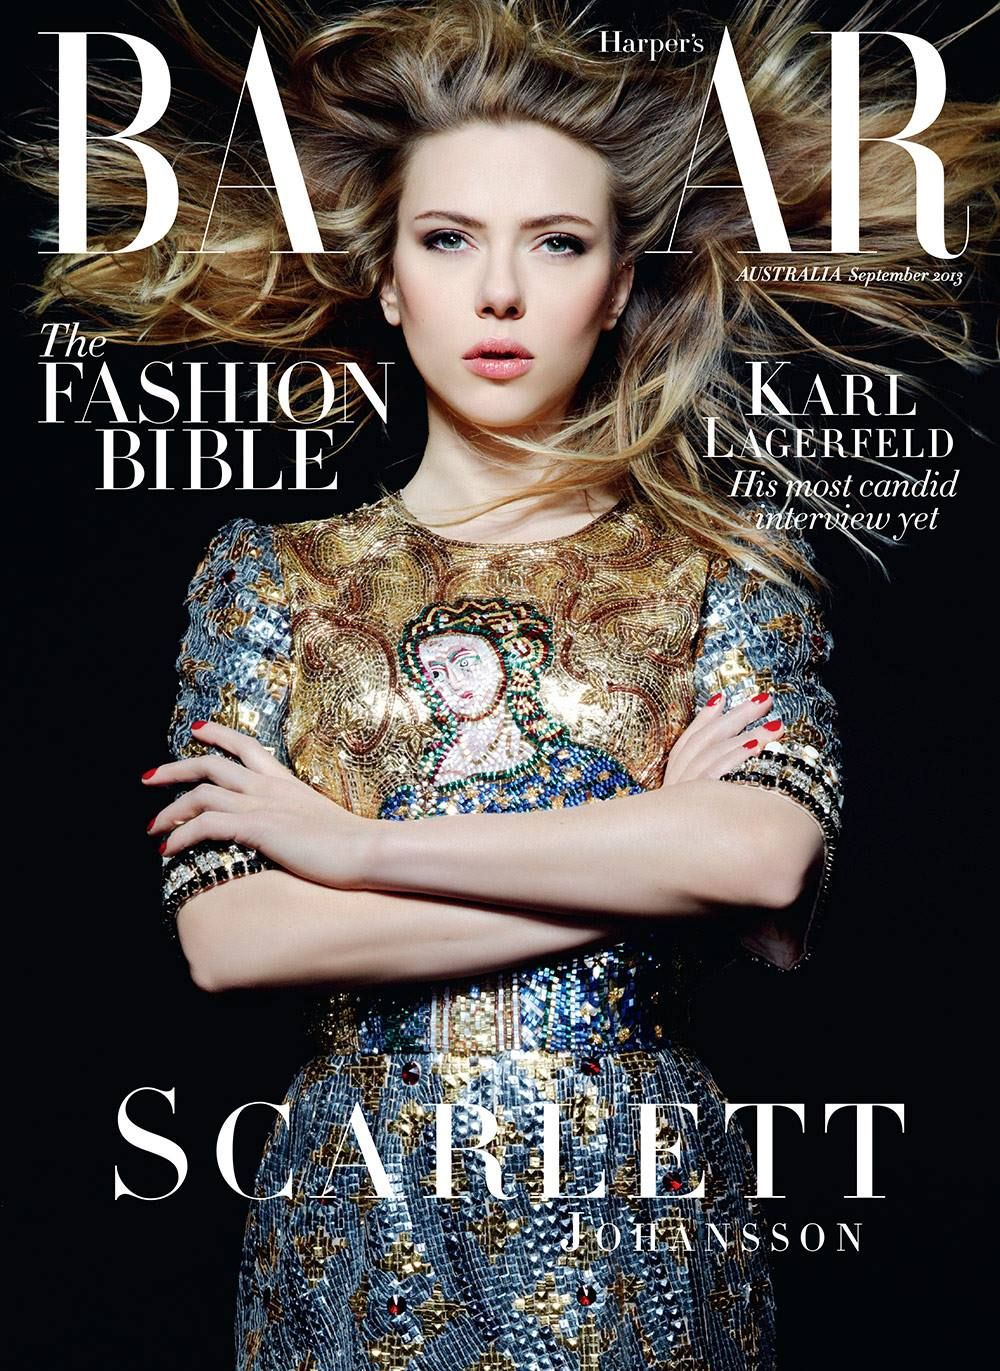 Scarlett Johansson in Dolce  Gabbana, photographed by Karl Lagerfeld for Harpers BAZAAR Australia, Sep 2013. one of her best shot!